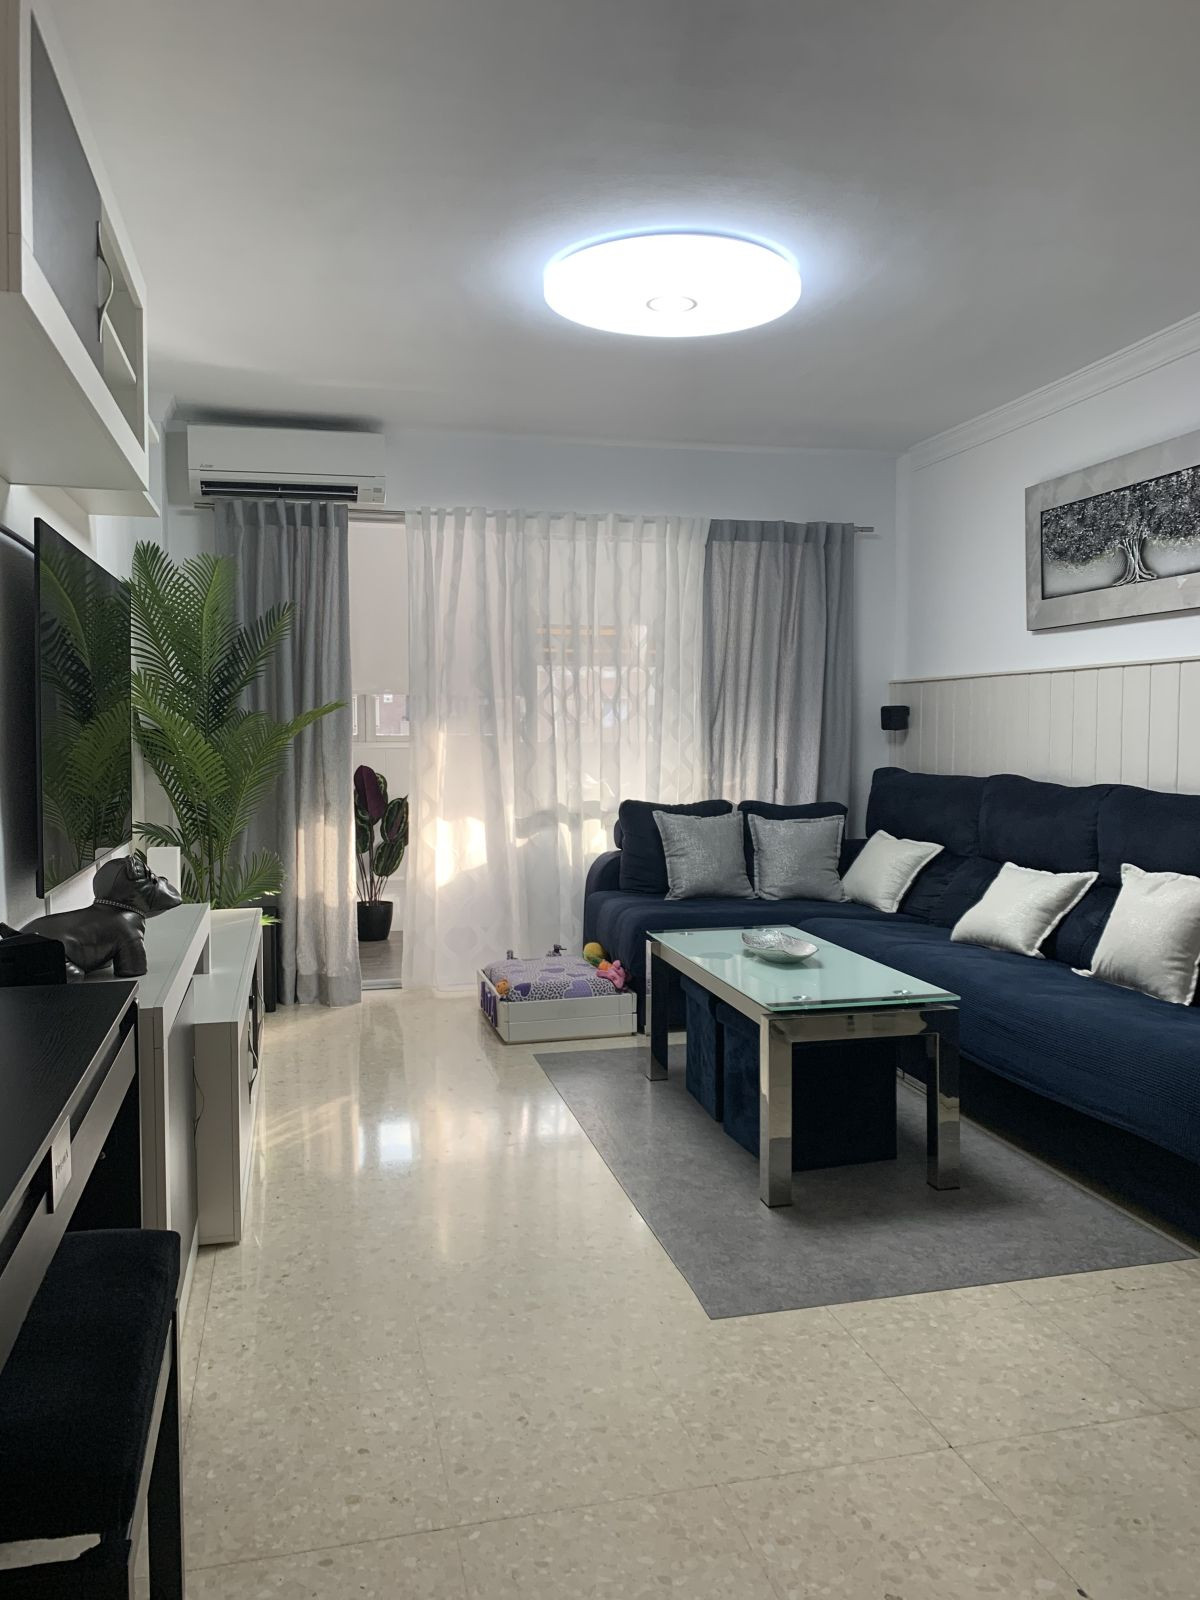 Beautiful 4 bedroom apartment in hero of Stoat is a house of 112 m2 distributed in spacious living r,Spain